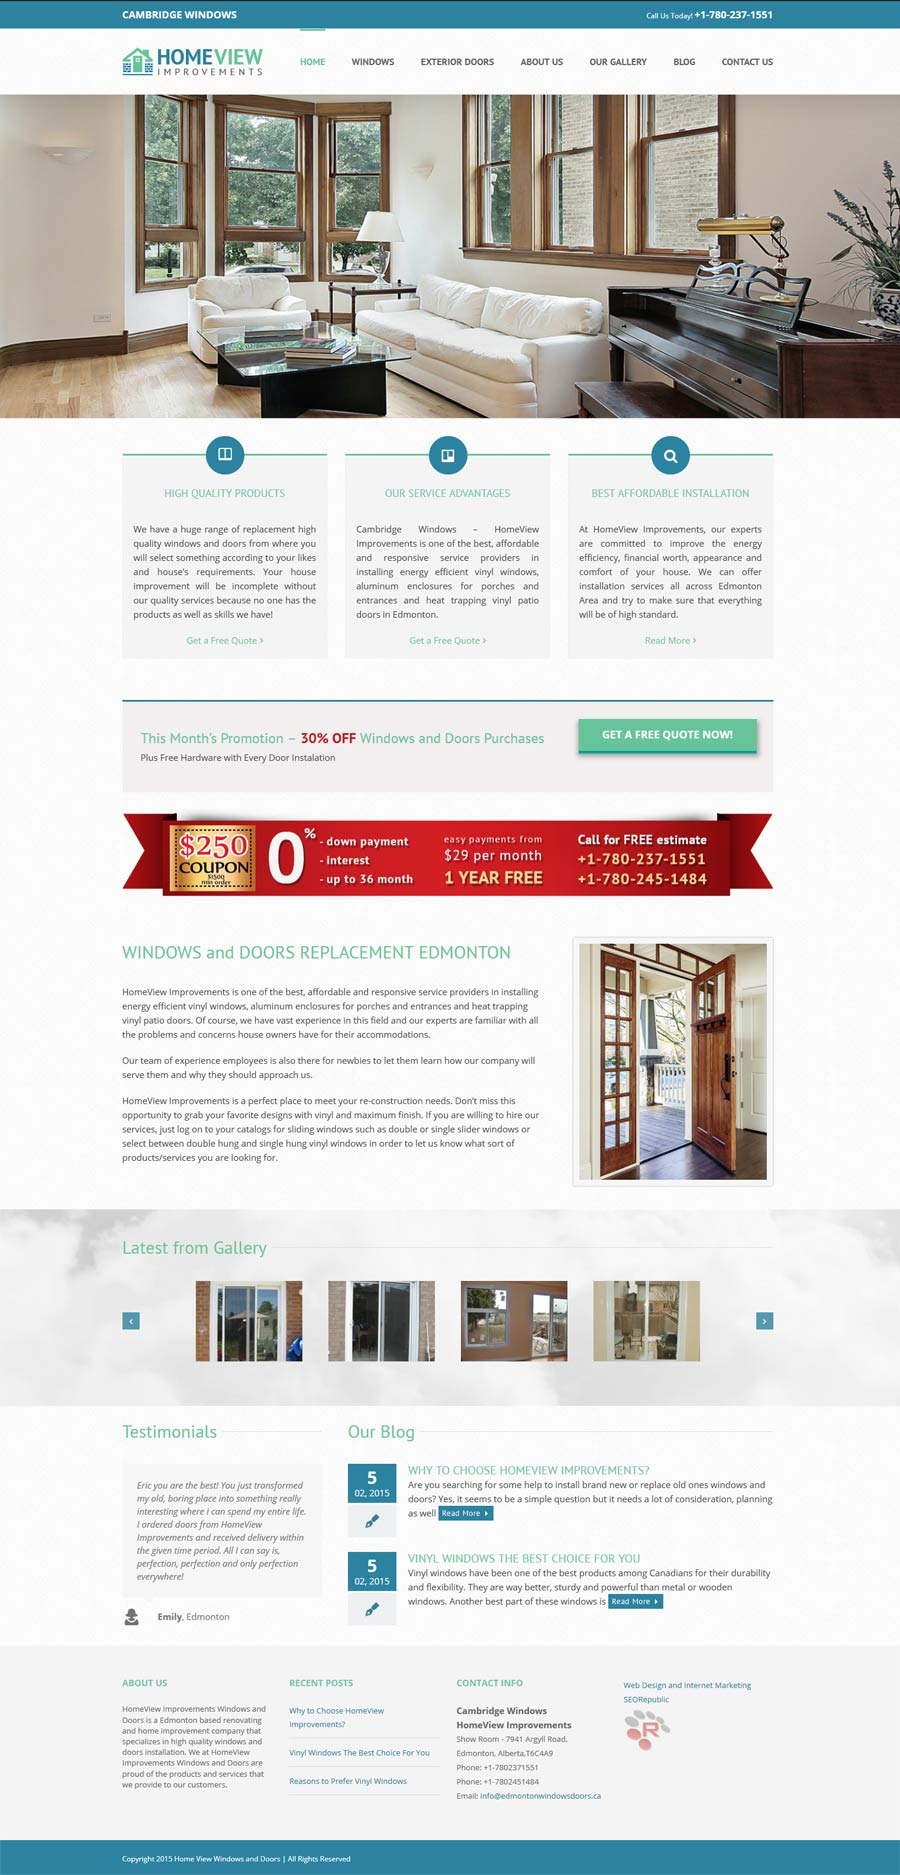 Web Design Edmonton Home View Improvements